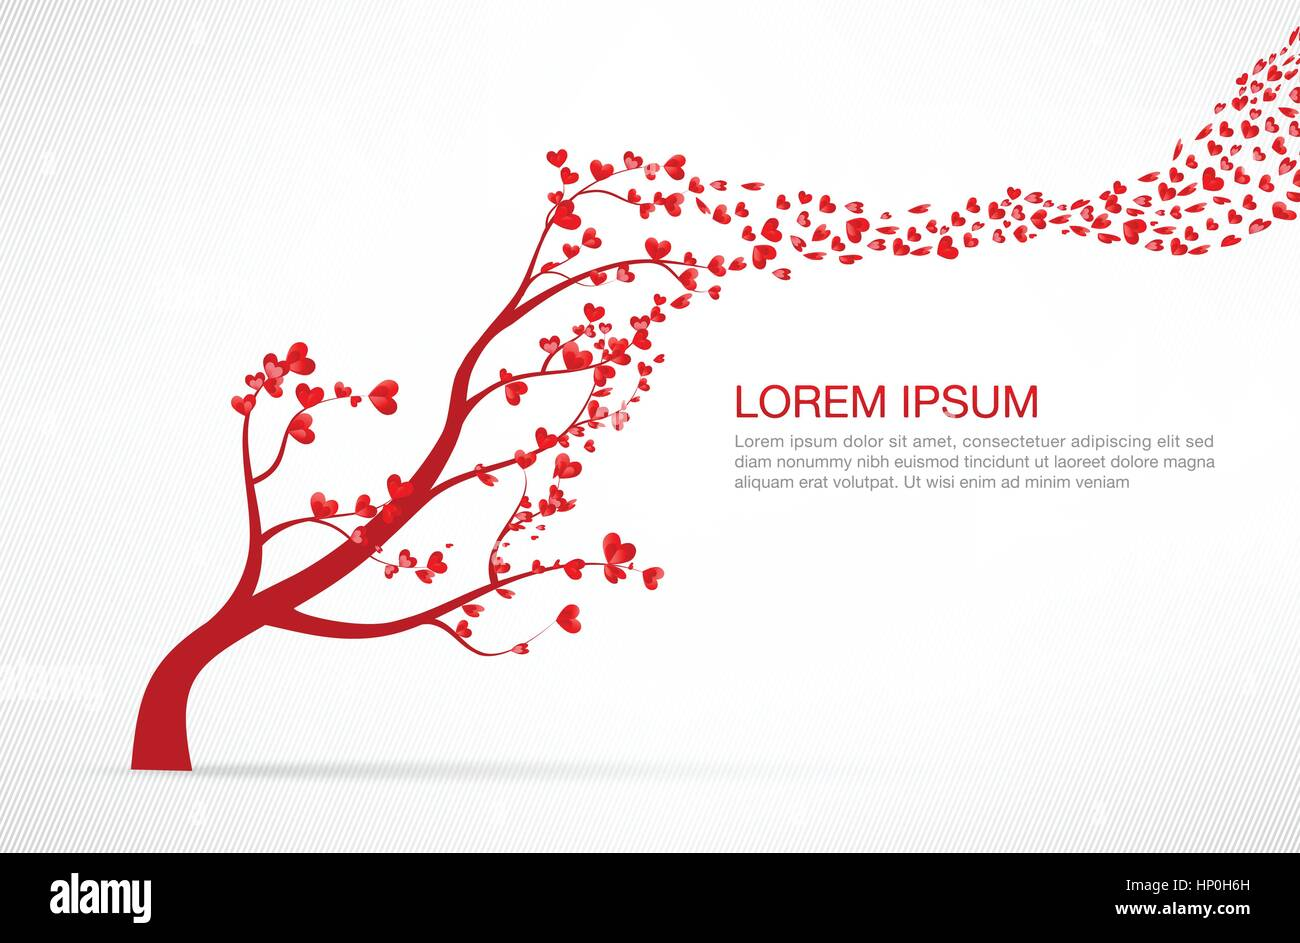 Heart tree element for valentine day and wedding card decoration heart tree element for valentine day and wedding card decoration vector illustration eps10 junglespirit Image collections